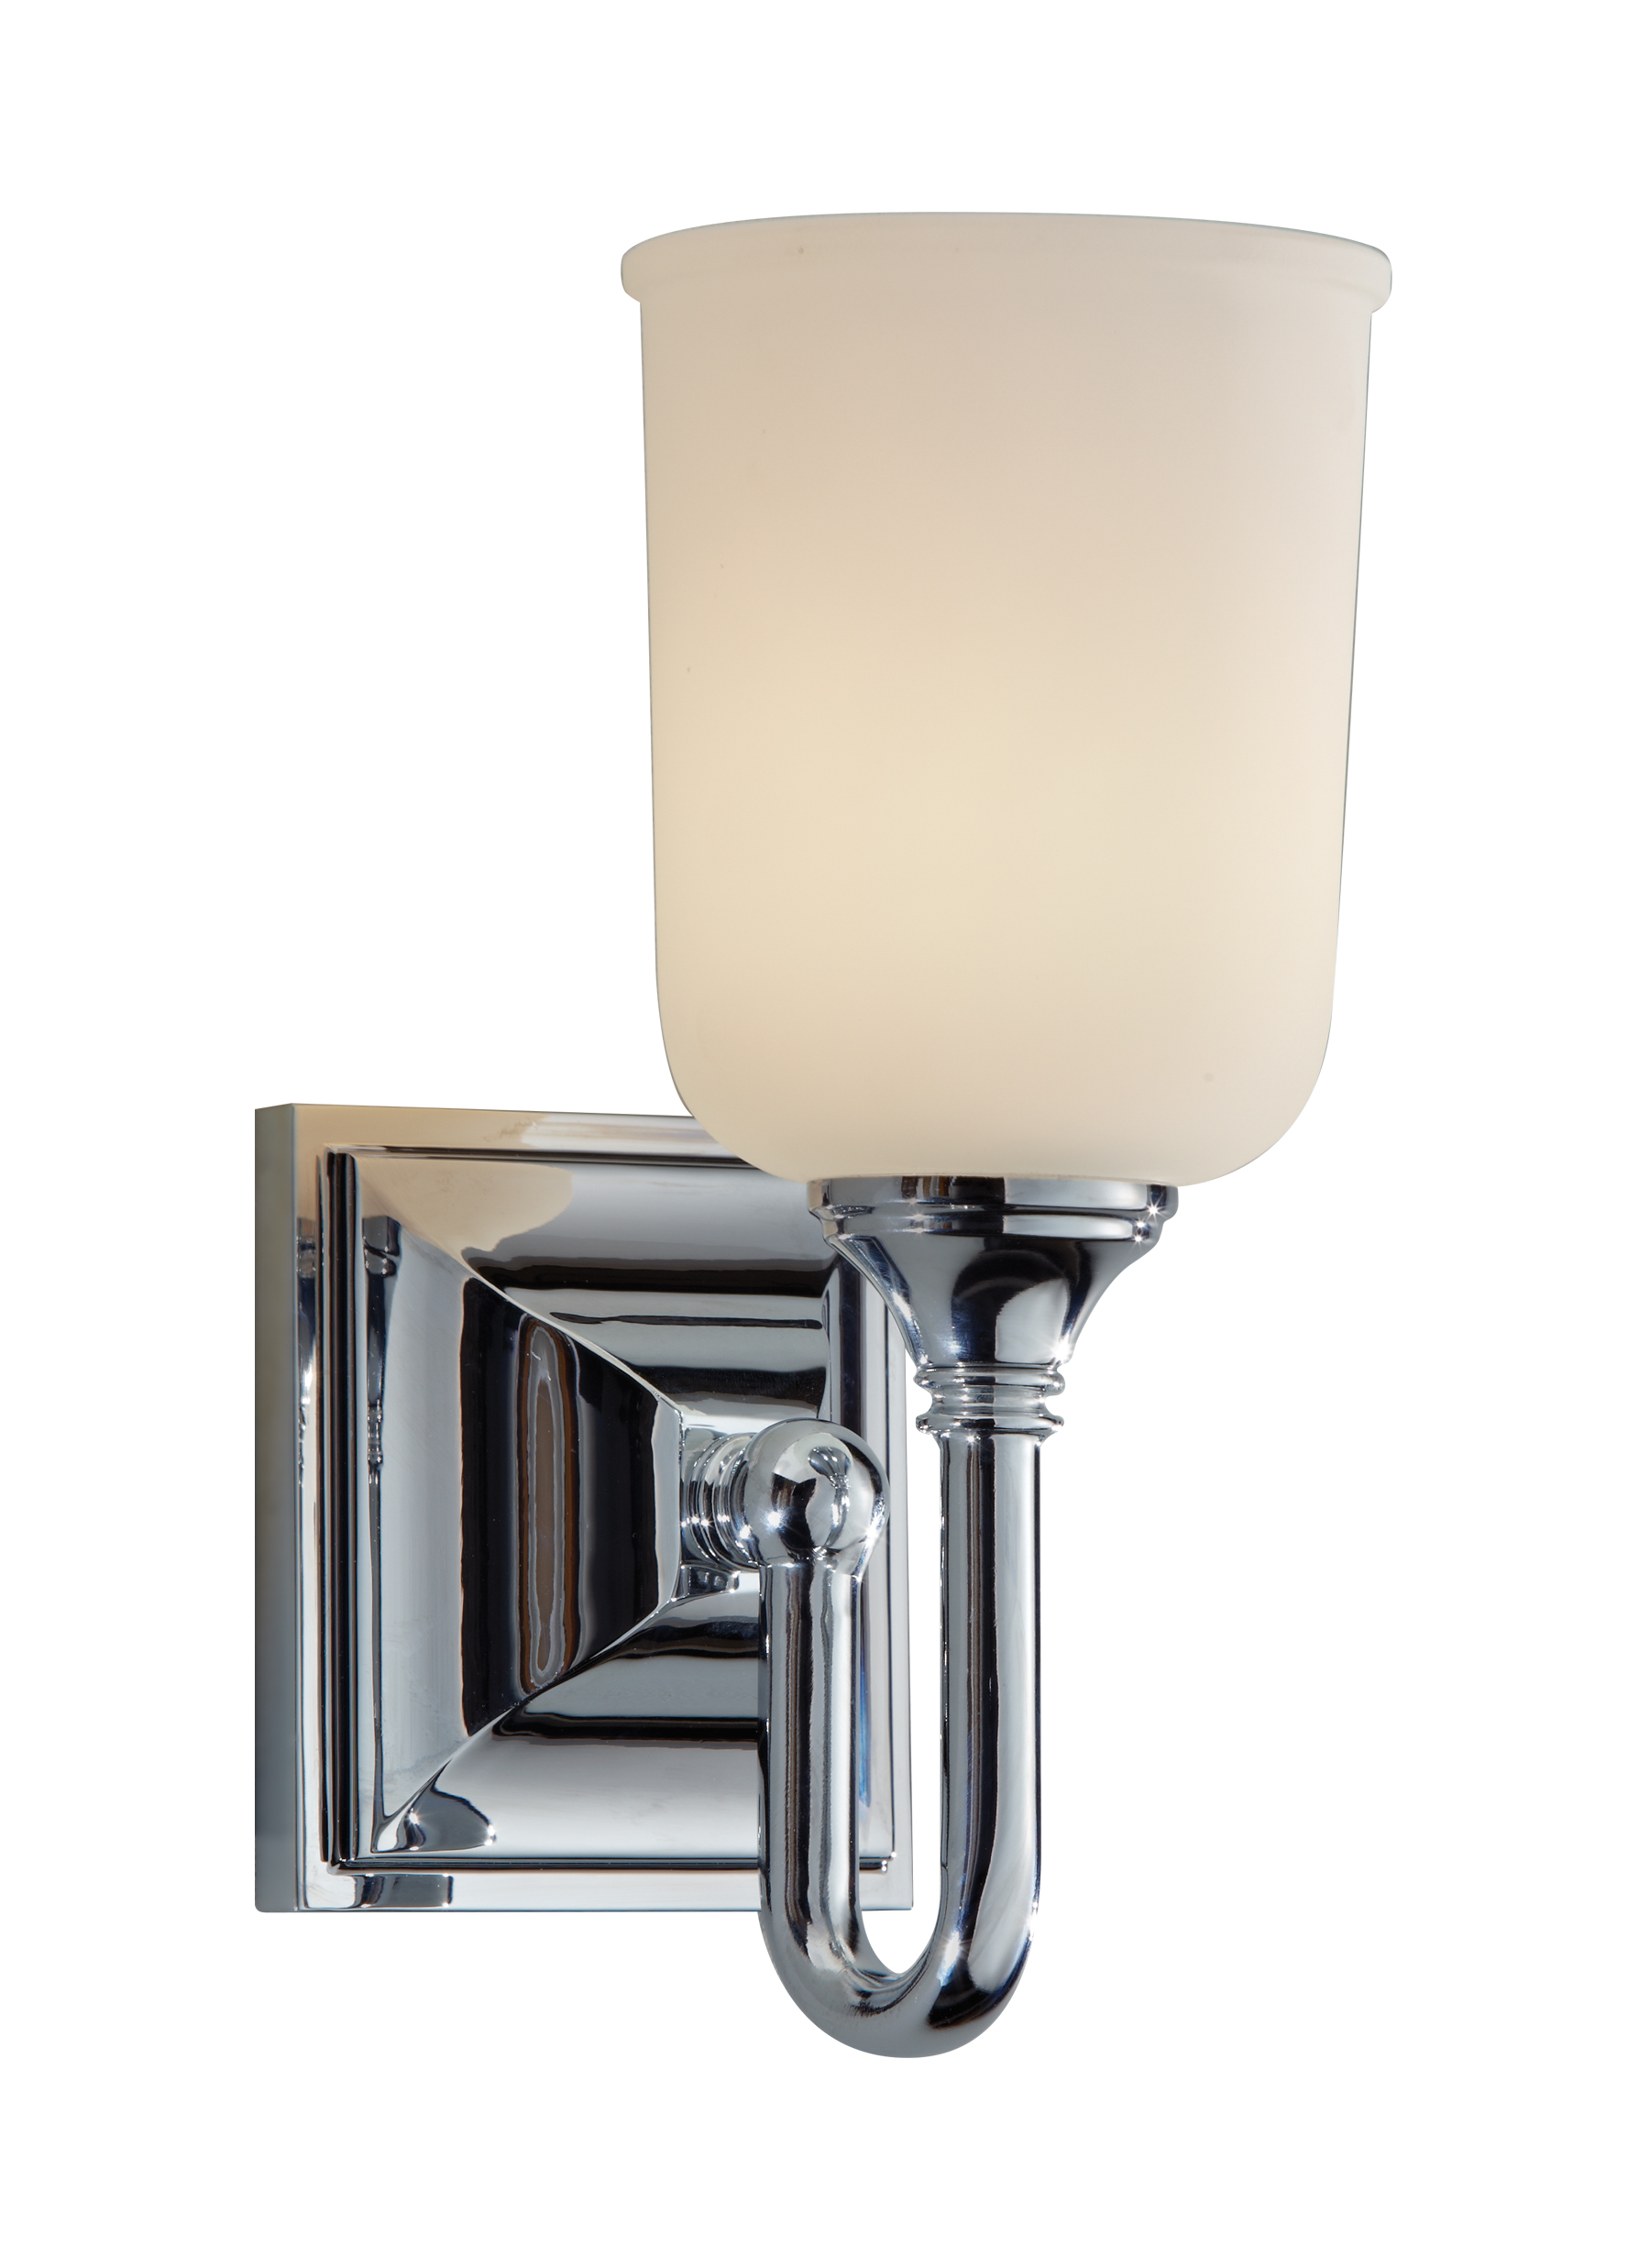 VS27001-CH,1 - Light Vanity Strip,Chrome